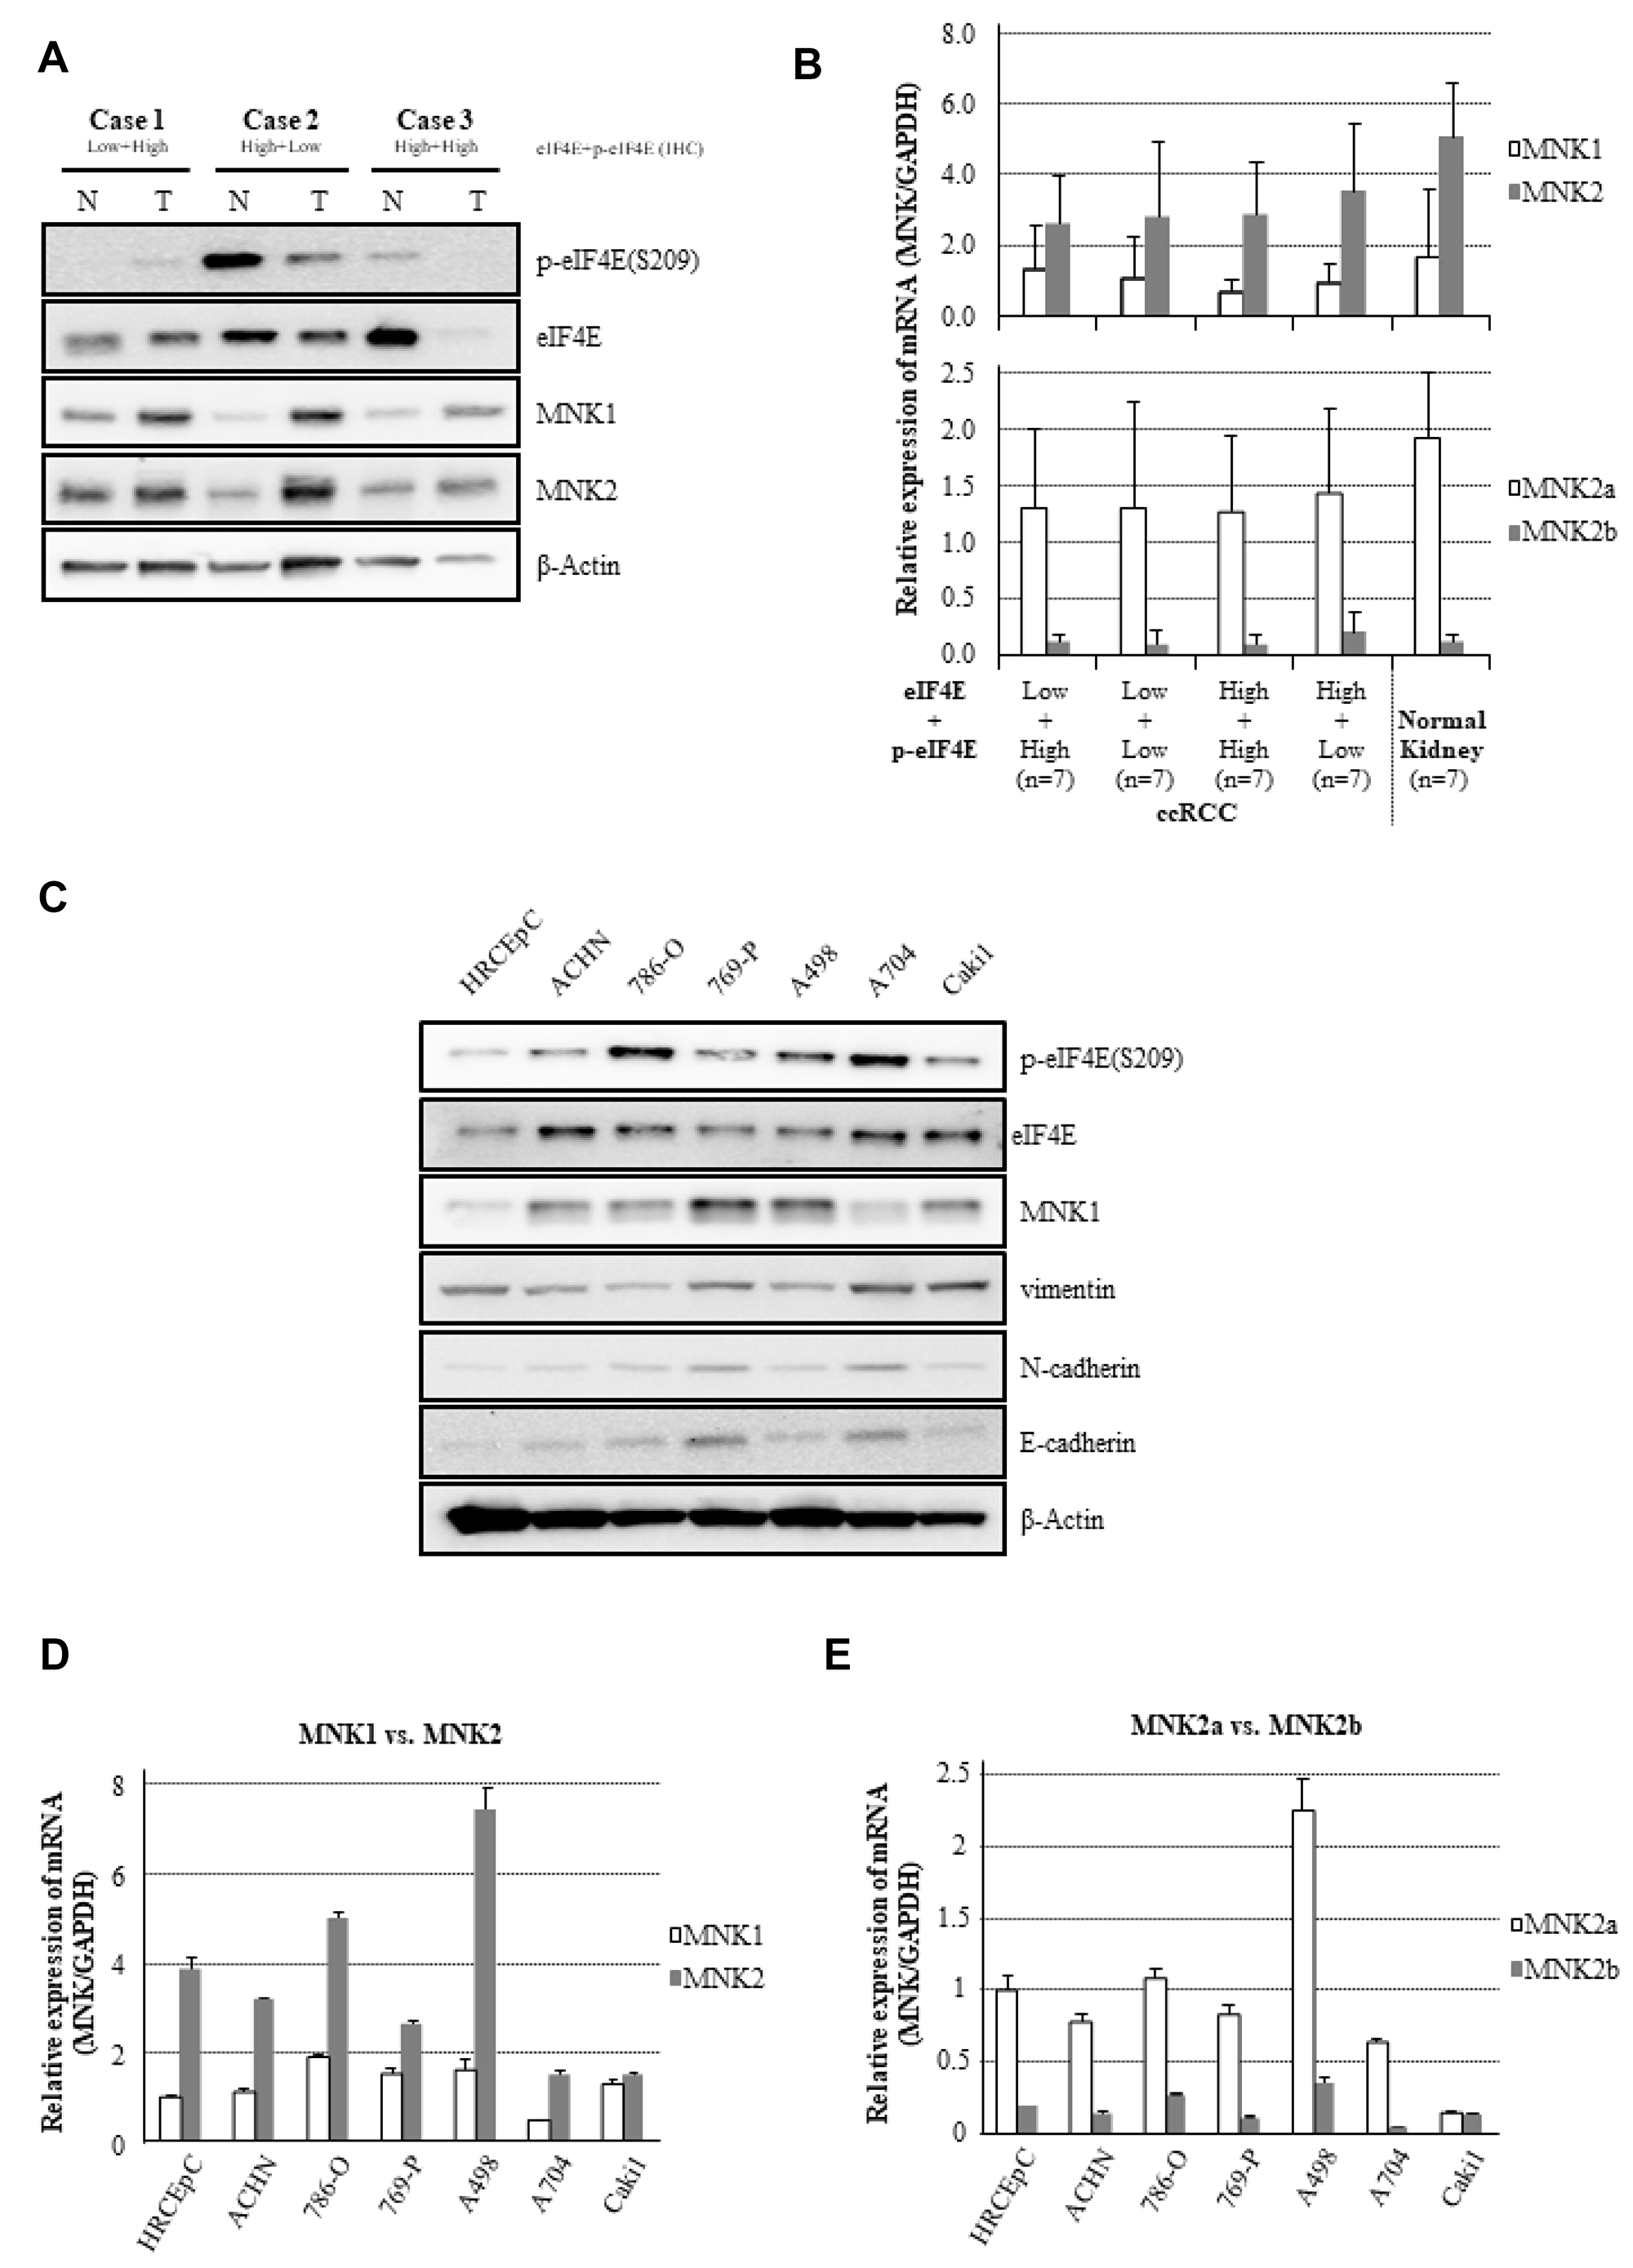 Expressional differences in MNK/eIF4E signaling and molecular markers on EMT.